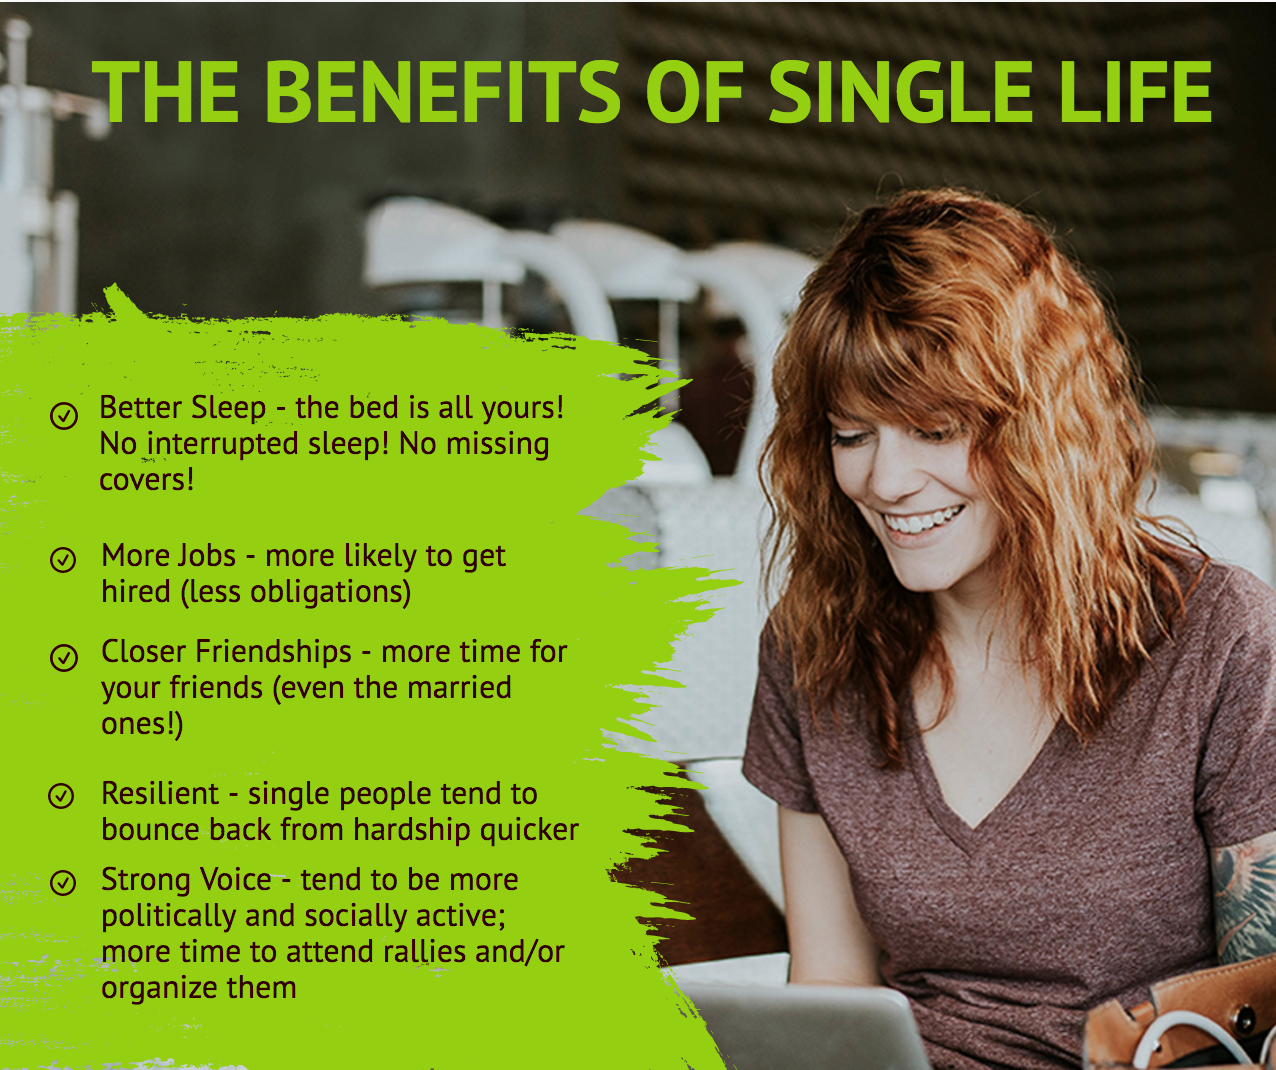 The benefits of single life